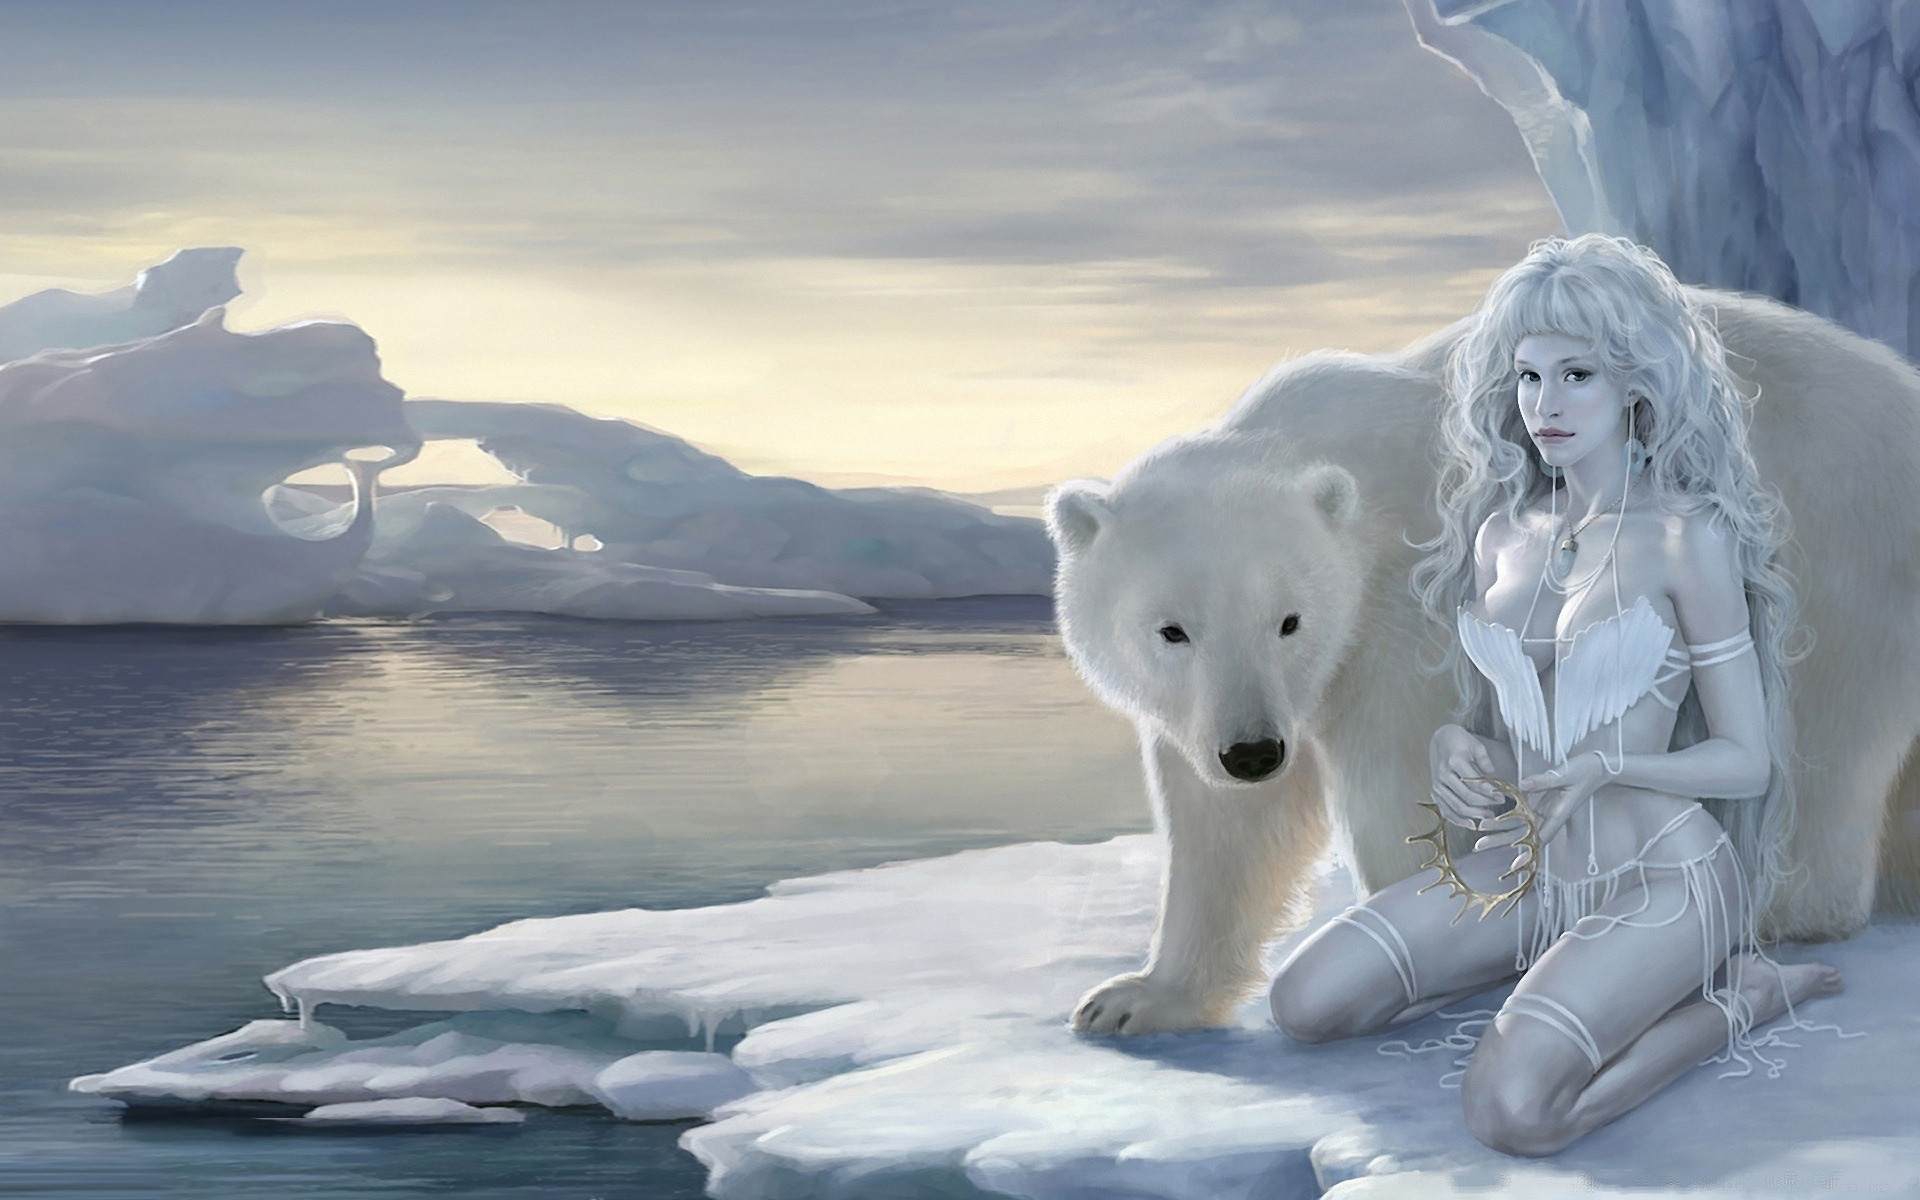 Snow Queen and a white polar bear